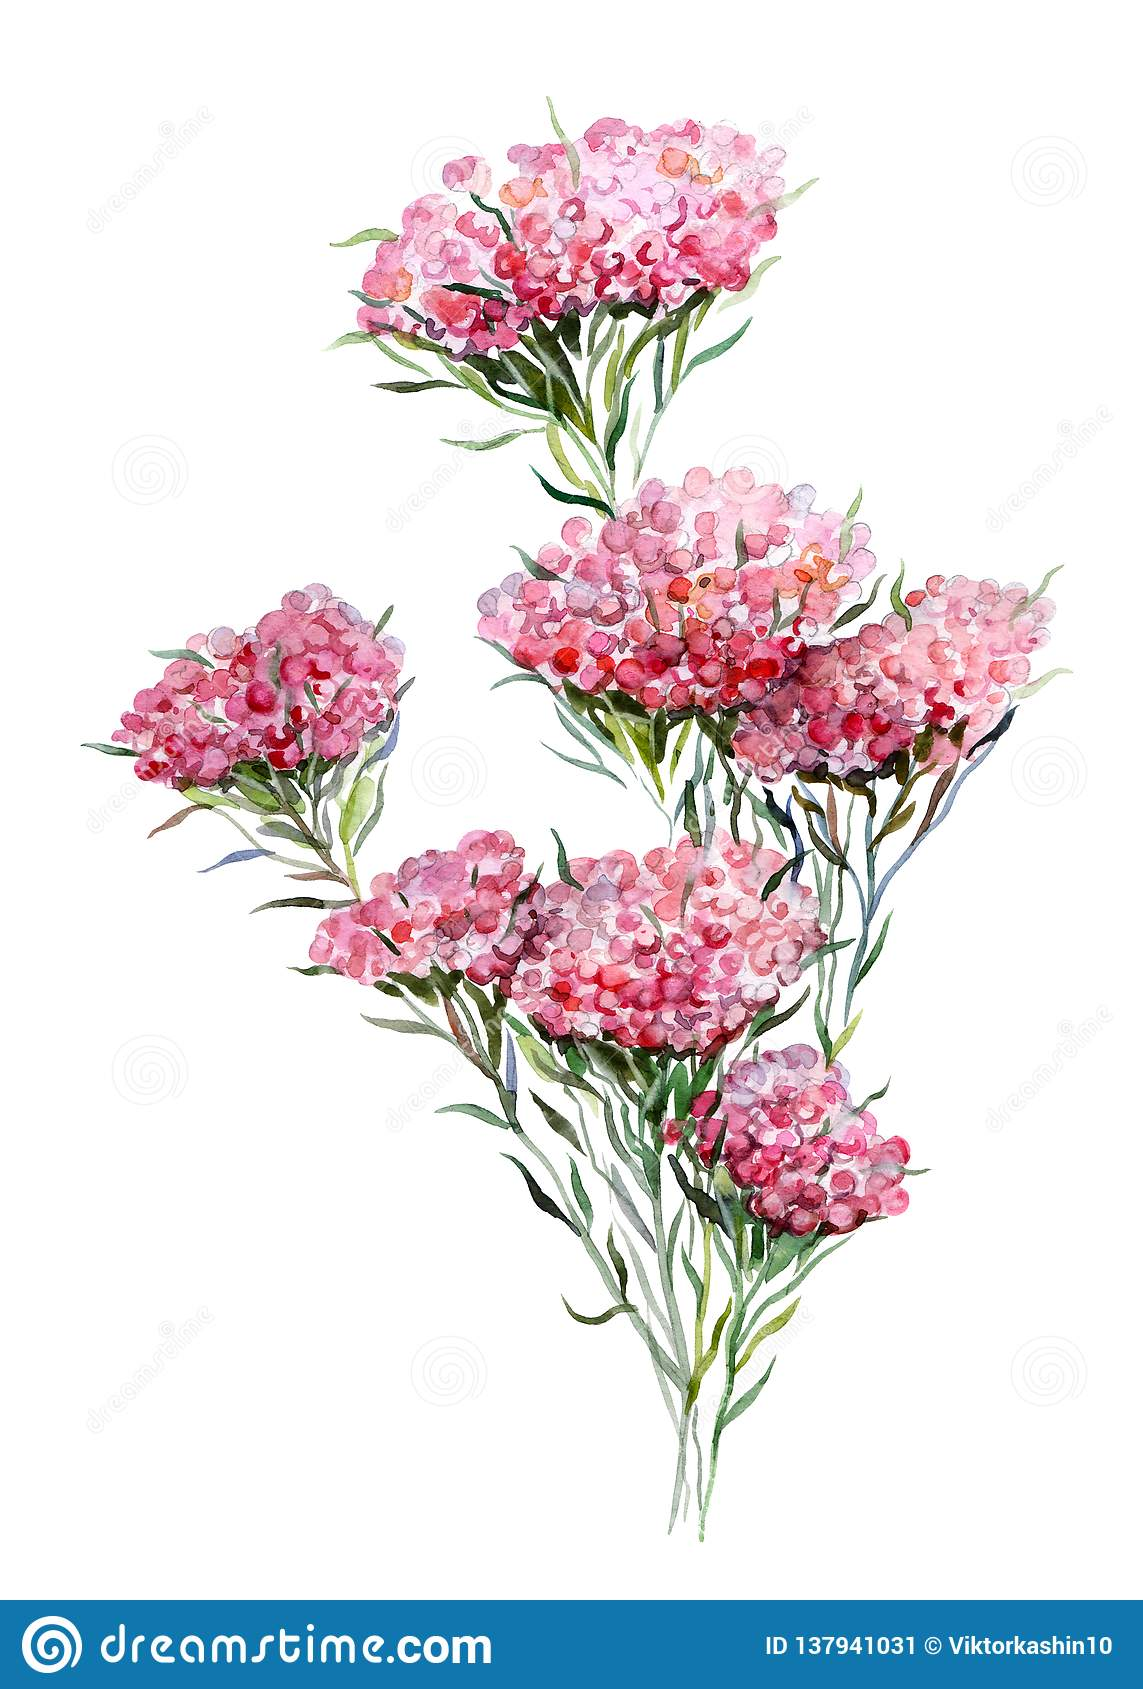 Rice flower. Handdrawn watercolor illustration of plants. Object isolated. Element for design of greeting cards.